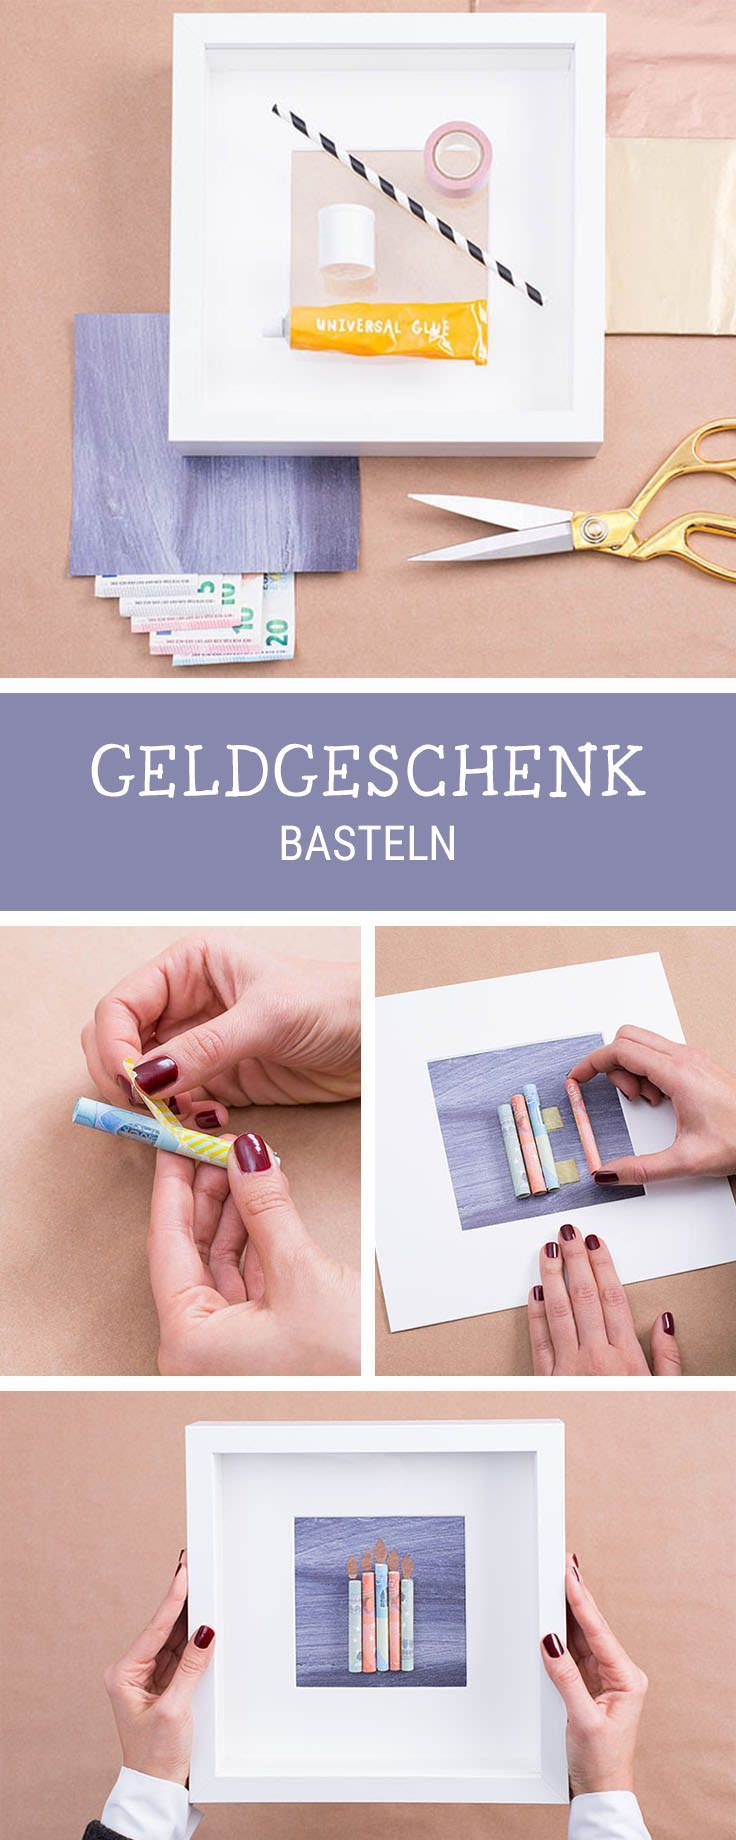 DIY-Inspiration für originelle Geldgeschenke, Gutscheine verschenken / diy tutorial: how to wrap money gifts via DaWanda.com #couponing